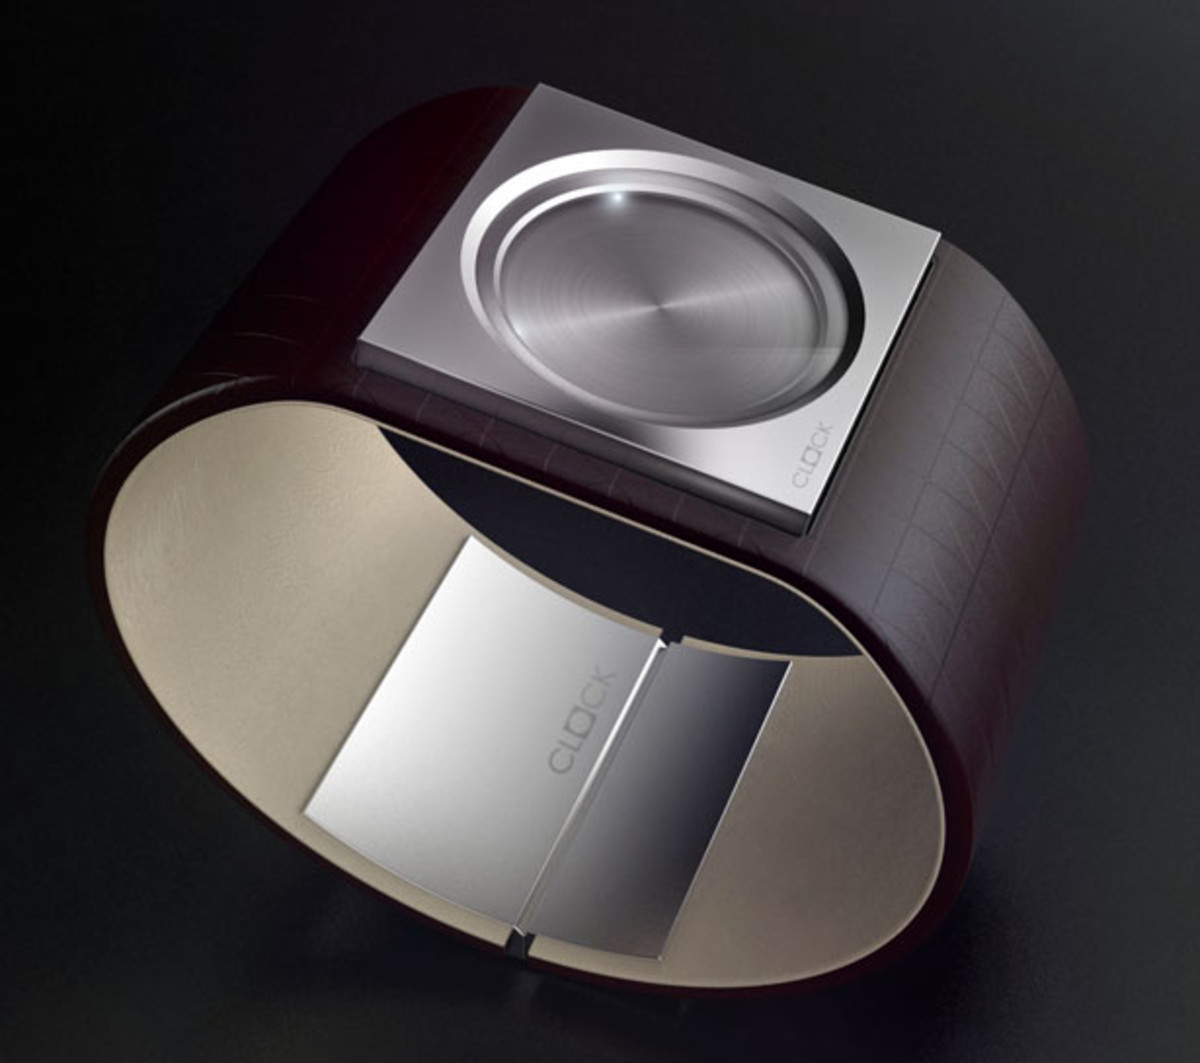 Concept Minimalist LED Watch by Felix Runde for TokyoFlash